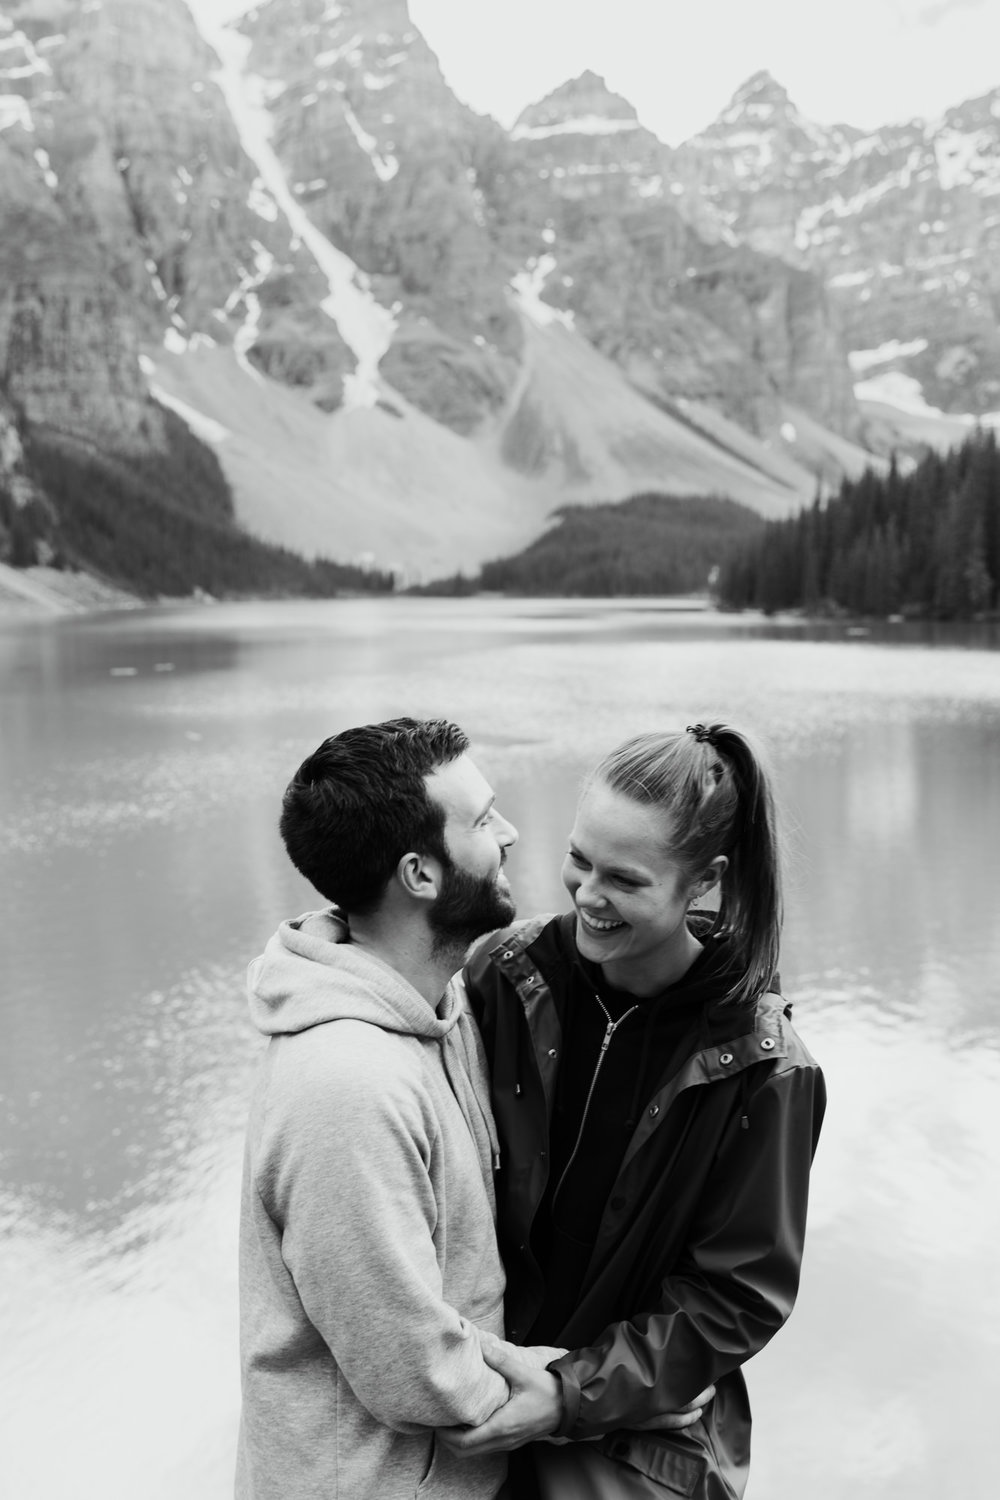 banff national park couple photo session // best of 2016 // adventure wedding photographer // www.abbihearne.com